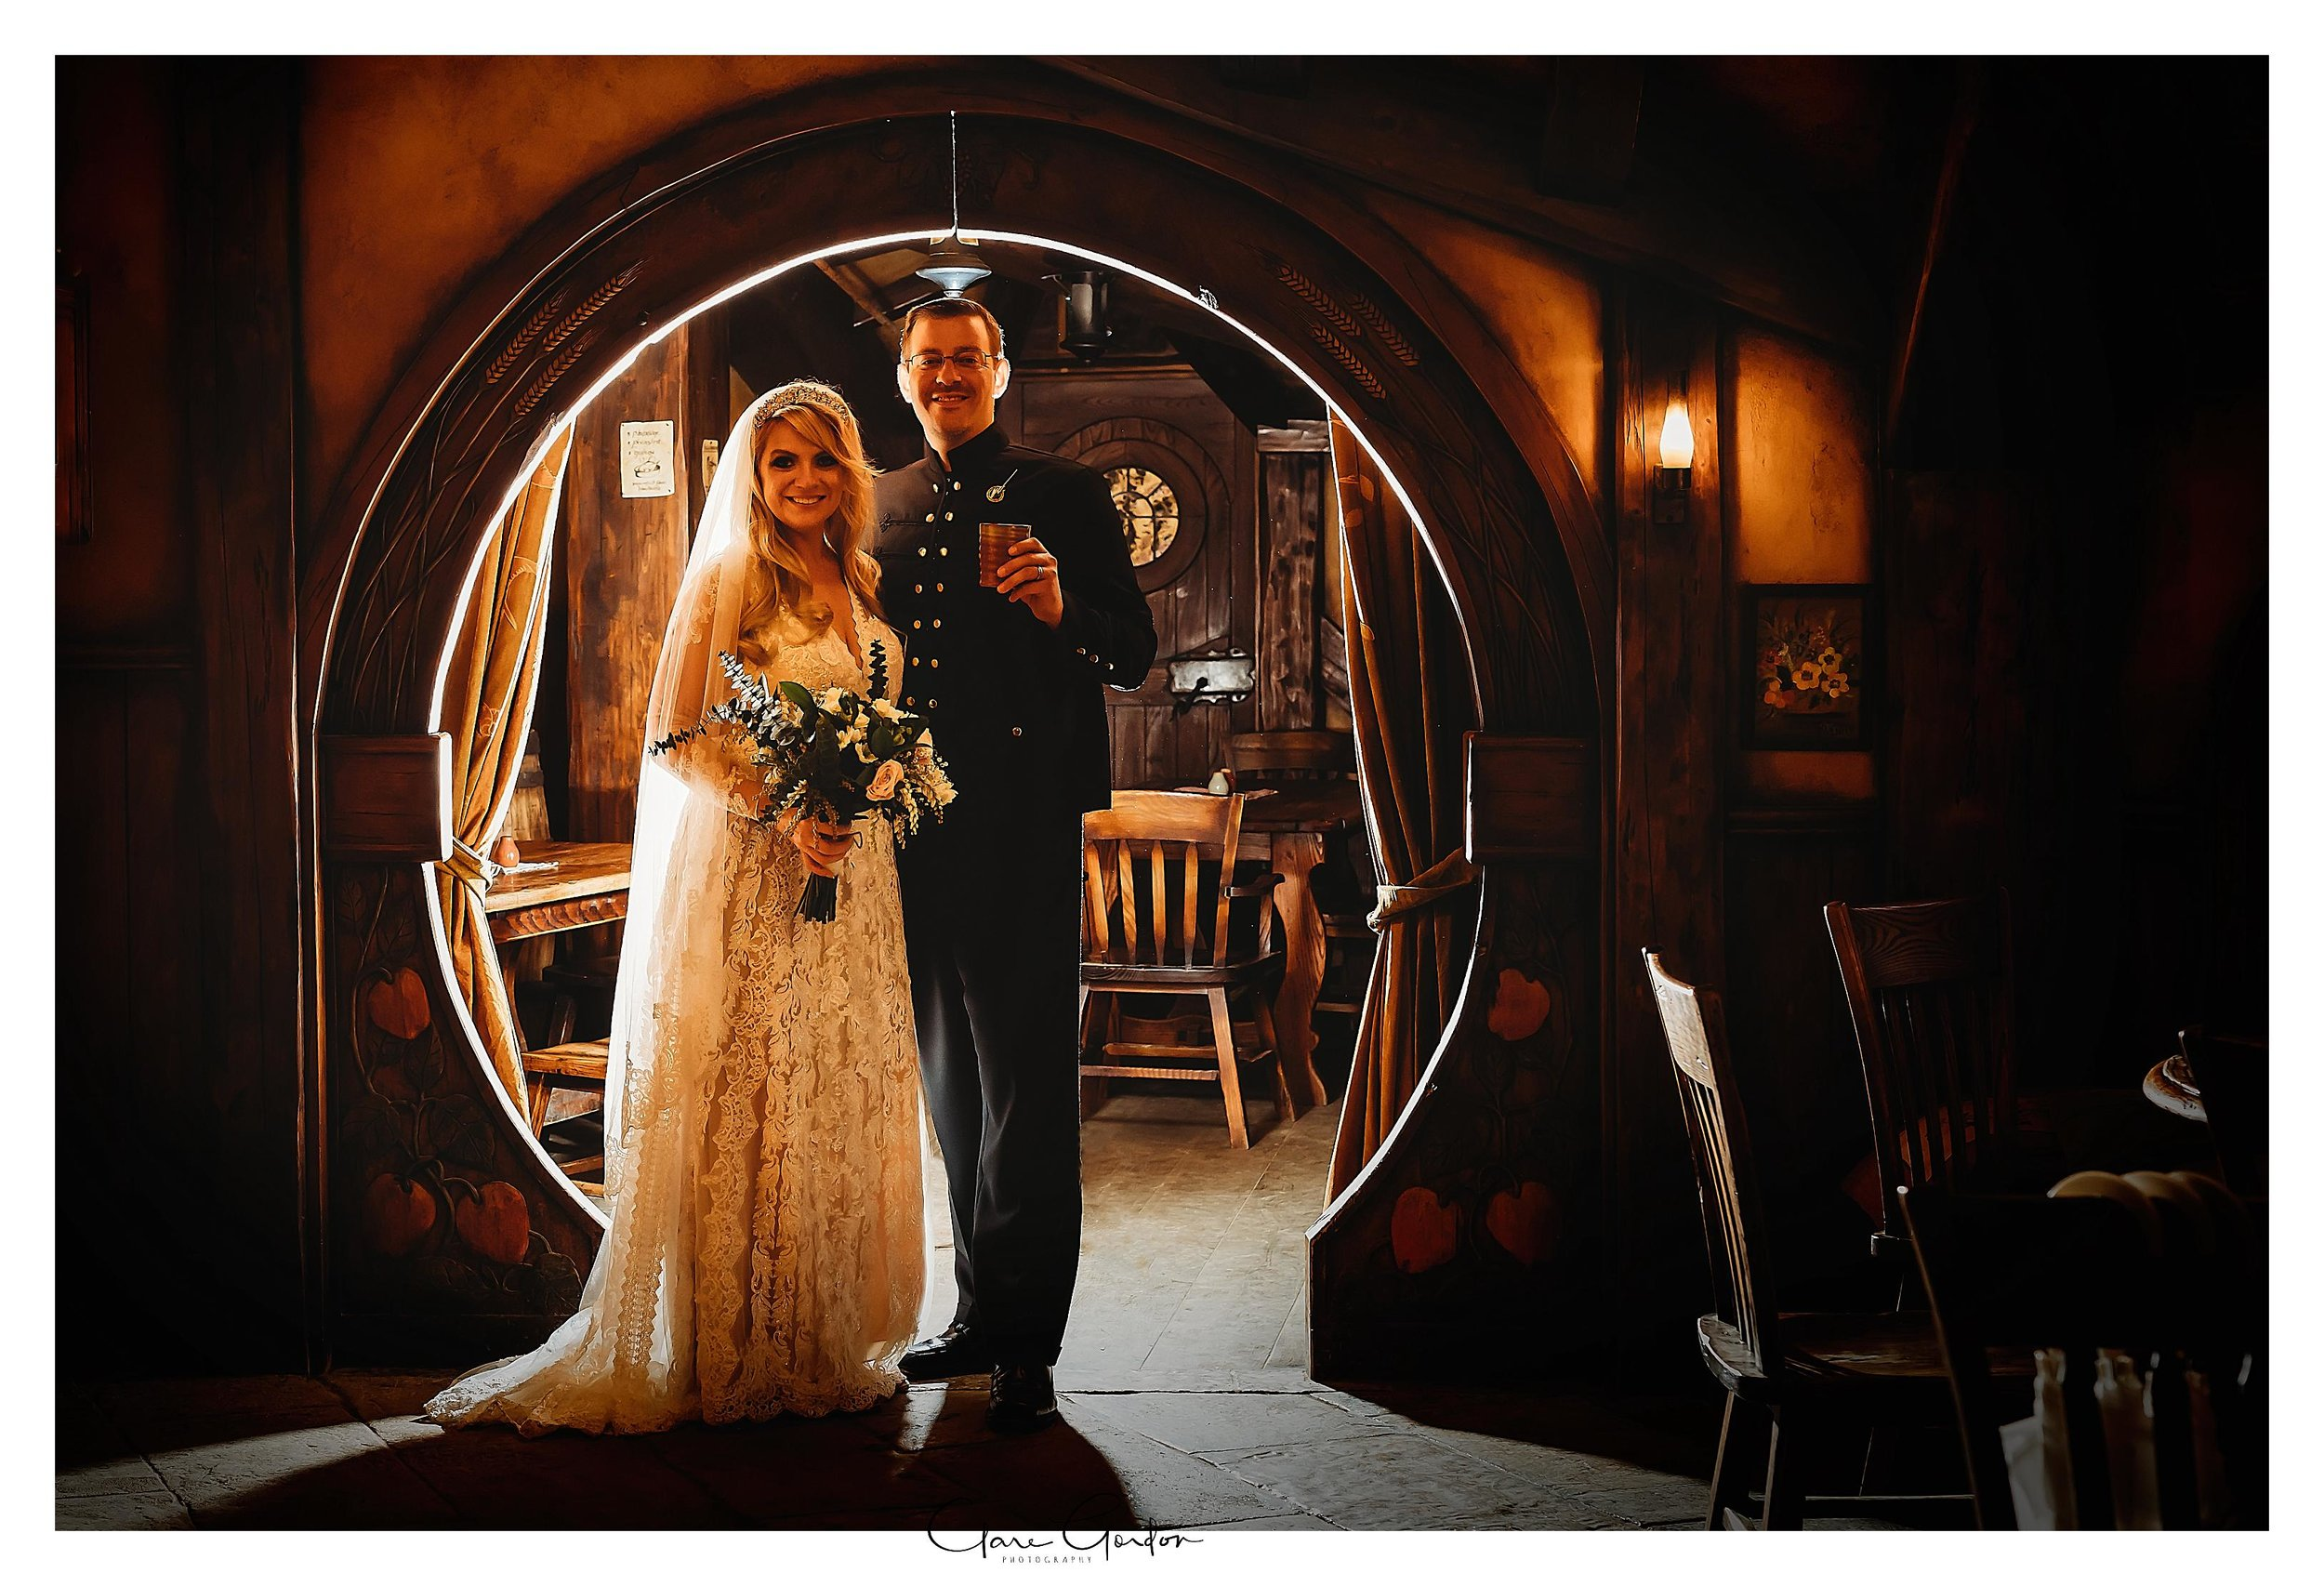 Hobbiton-movie-set-wedding-photo-matamata-bride-and-groom-Photo_newZealand-wedding-photographer (4).jpg